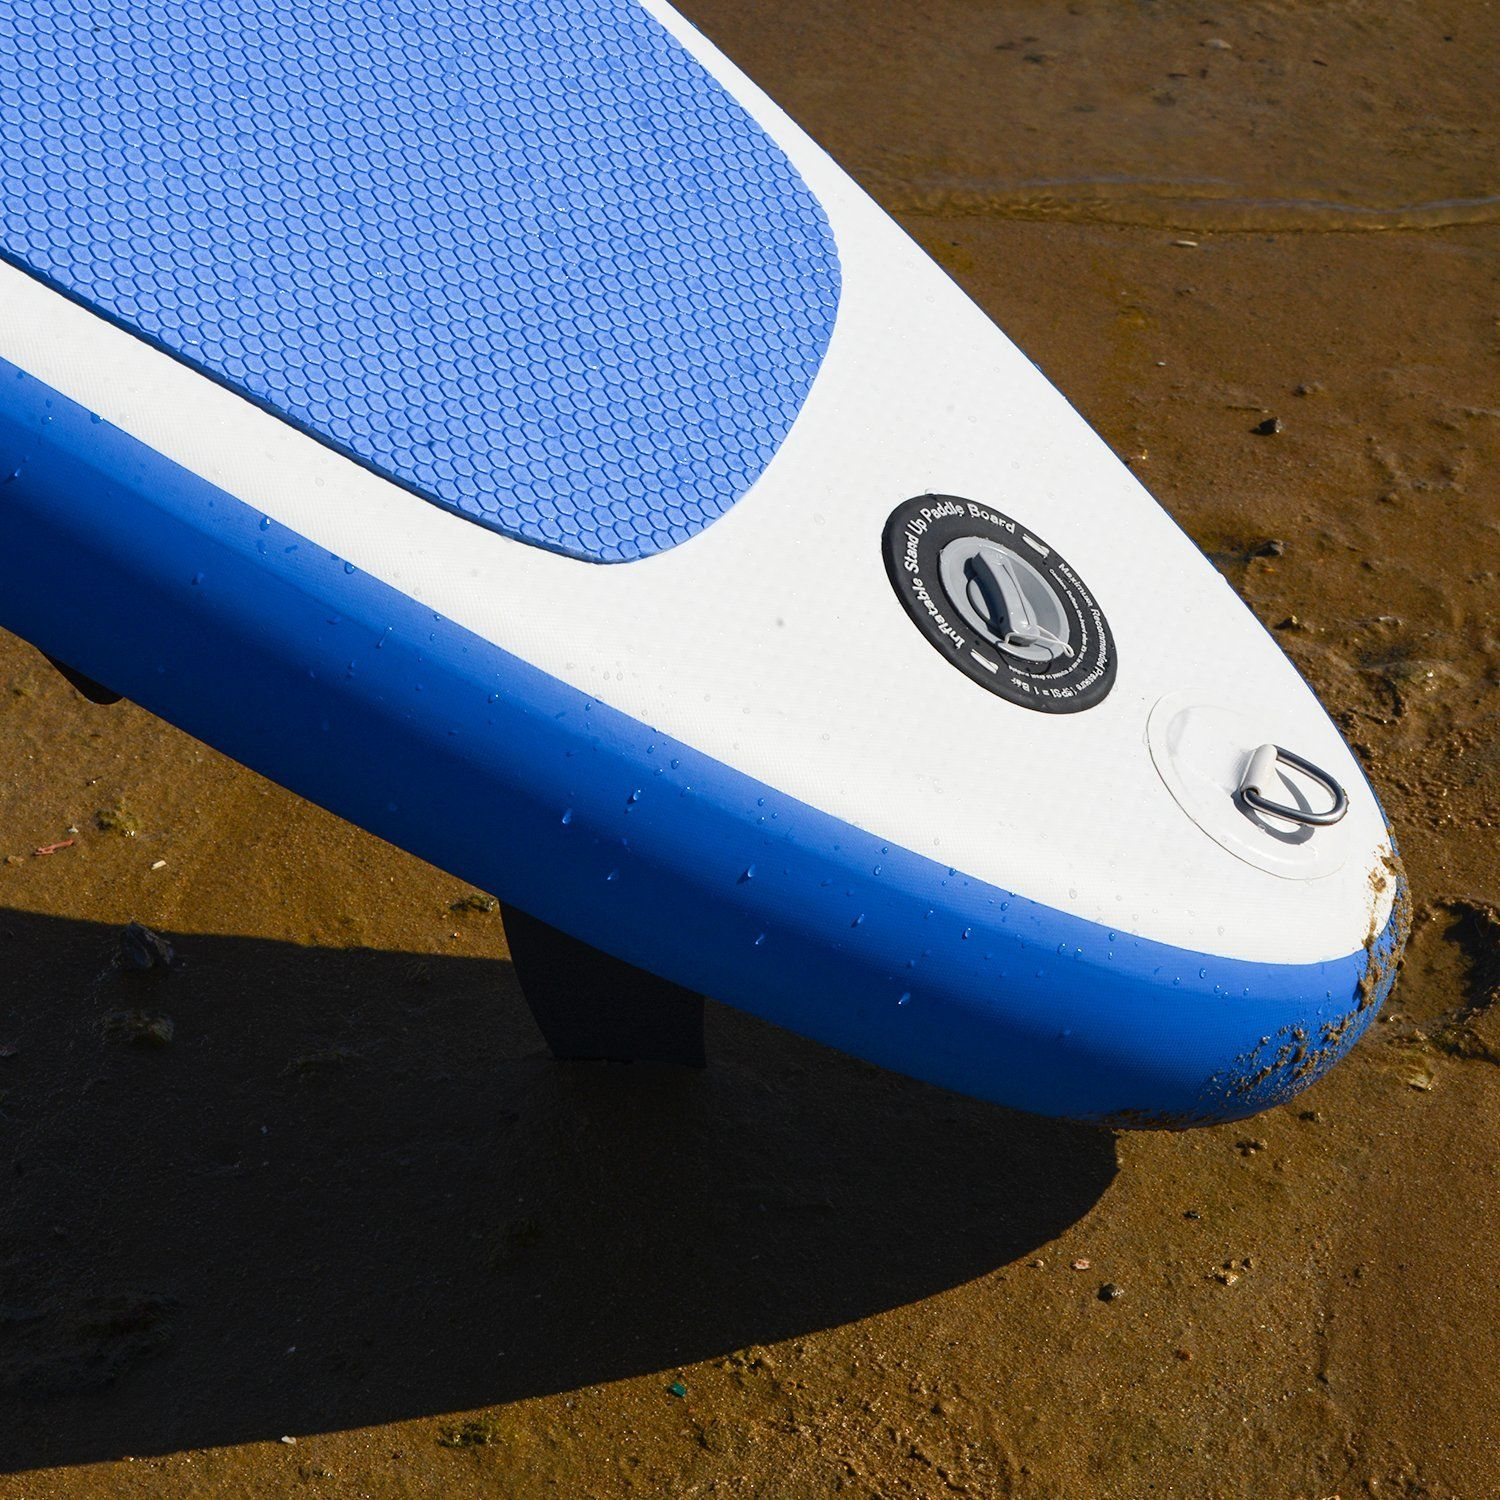 la mejor tabla paddle surf hinchable Redder-ganga amazon